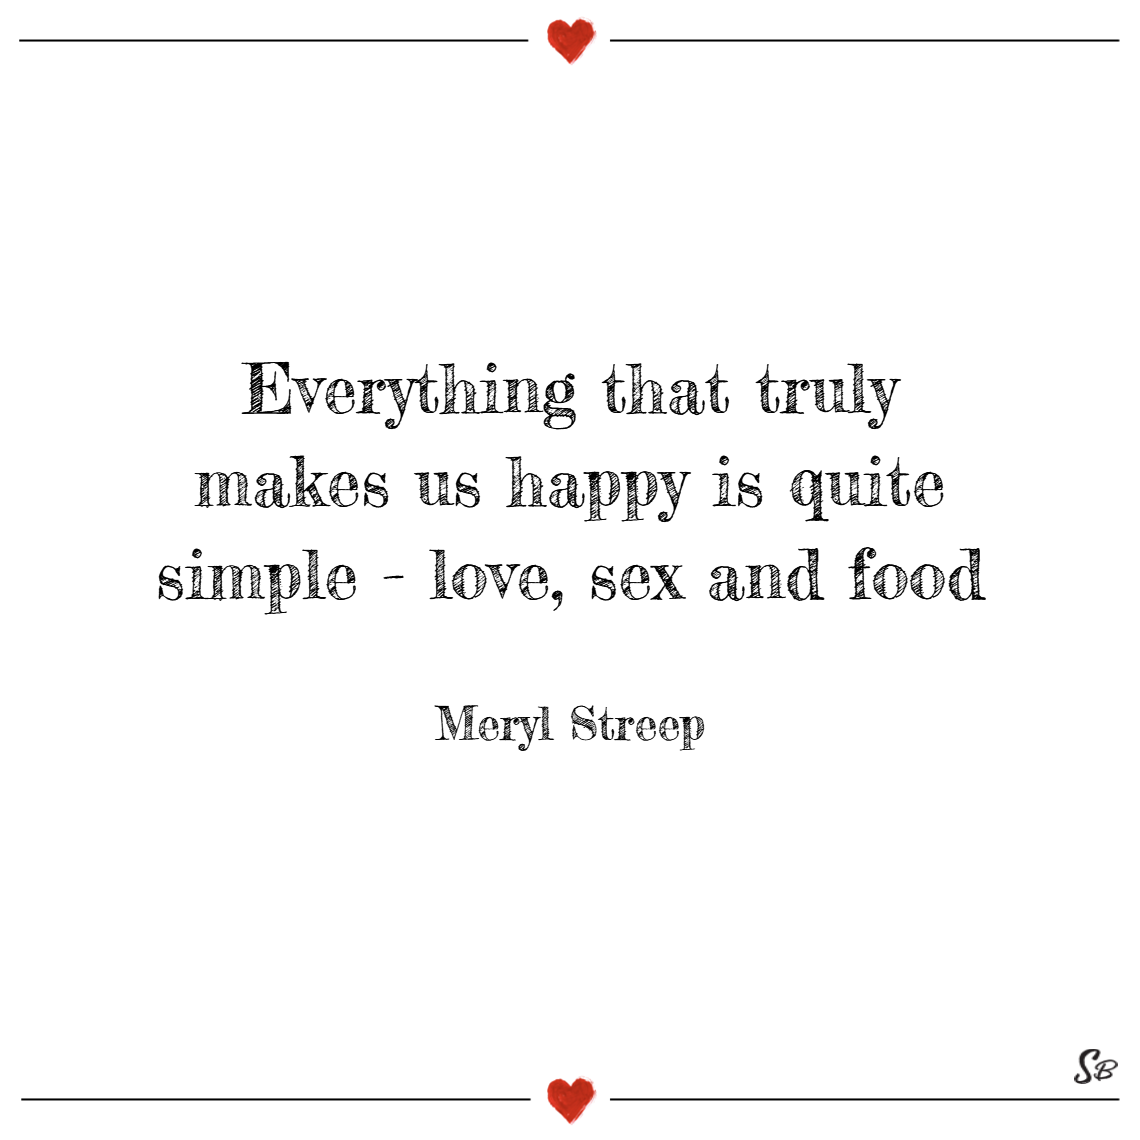 Everything that truly makes us happy is quite simple love, sex and food! – meryl streep